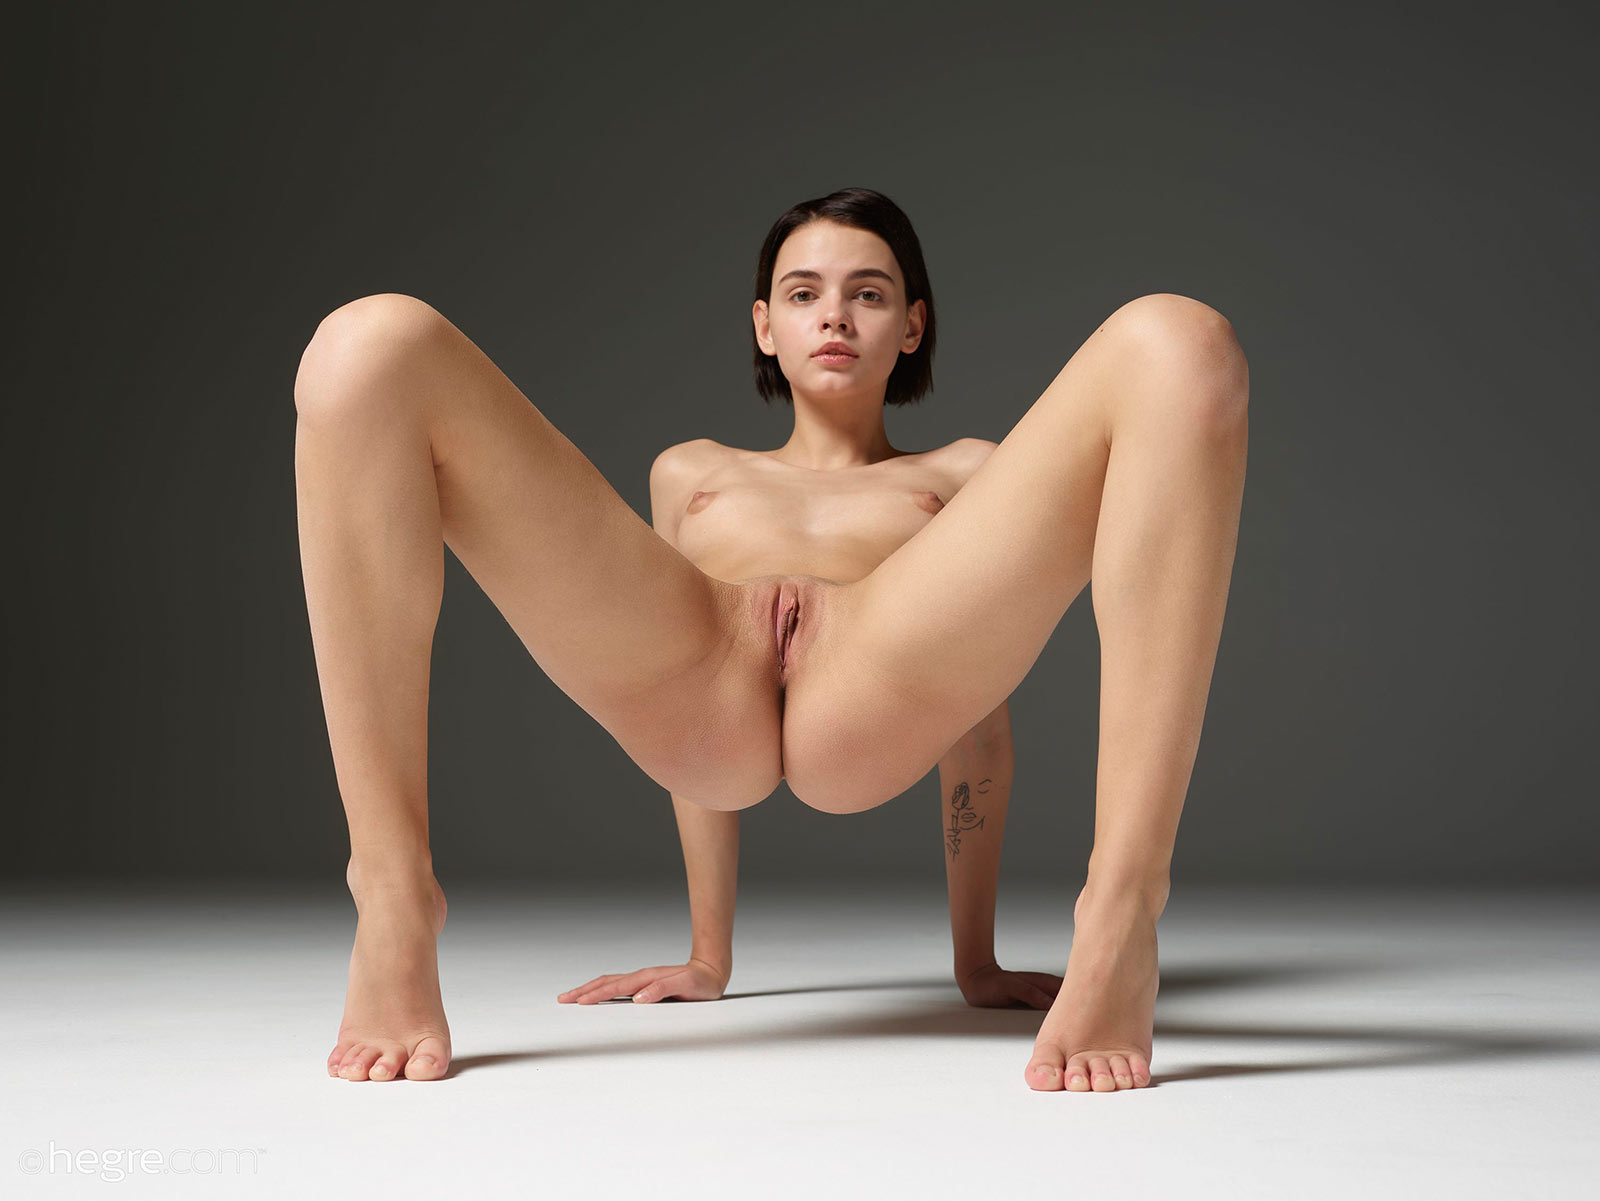 Peter HEGRE Free Erotic Art Photos Sexy Nudes, Hot Nude